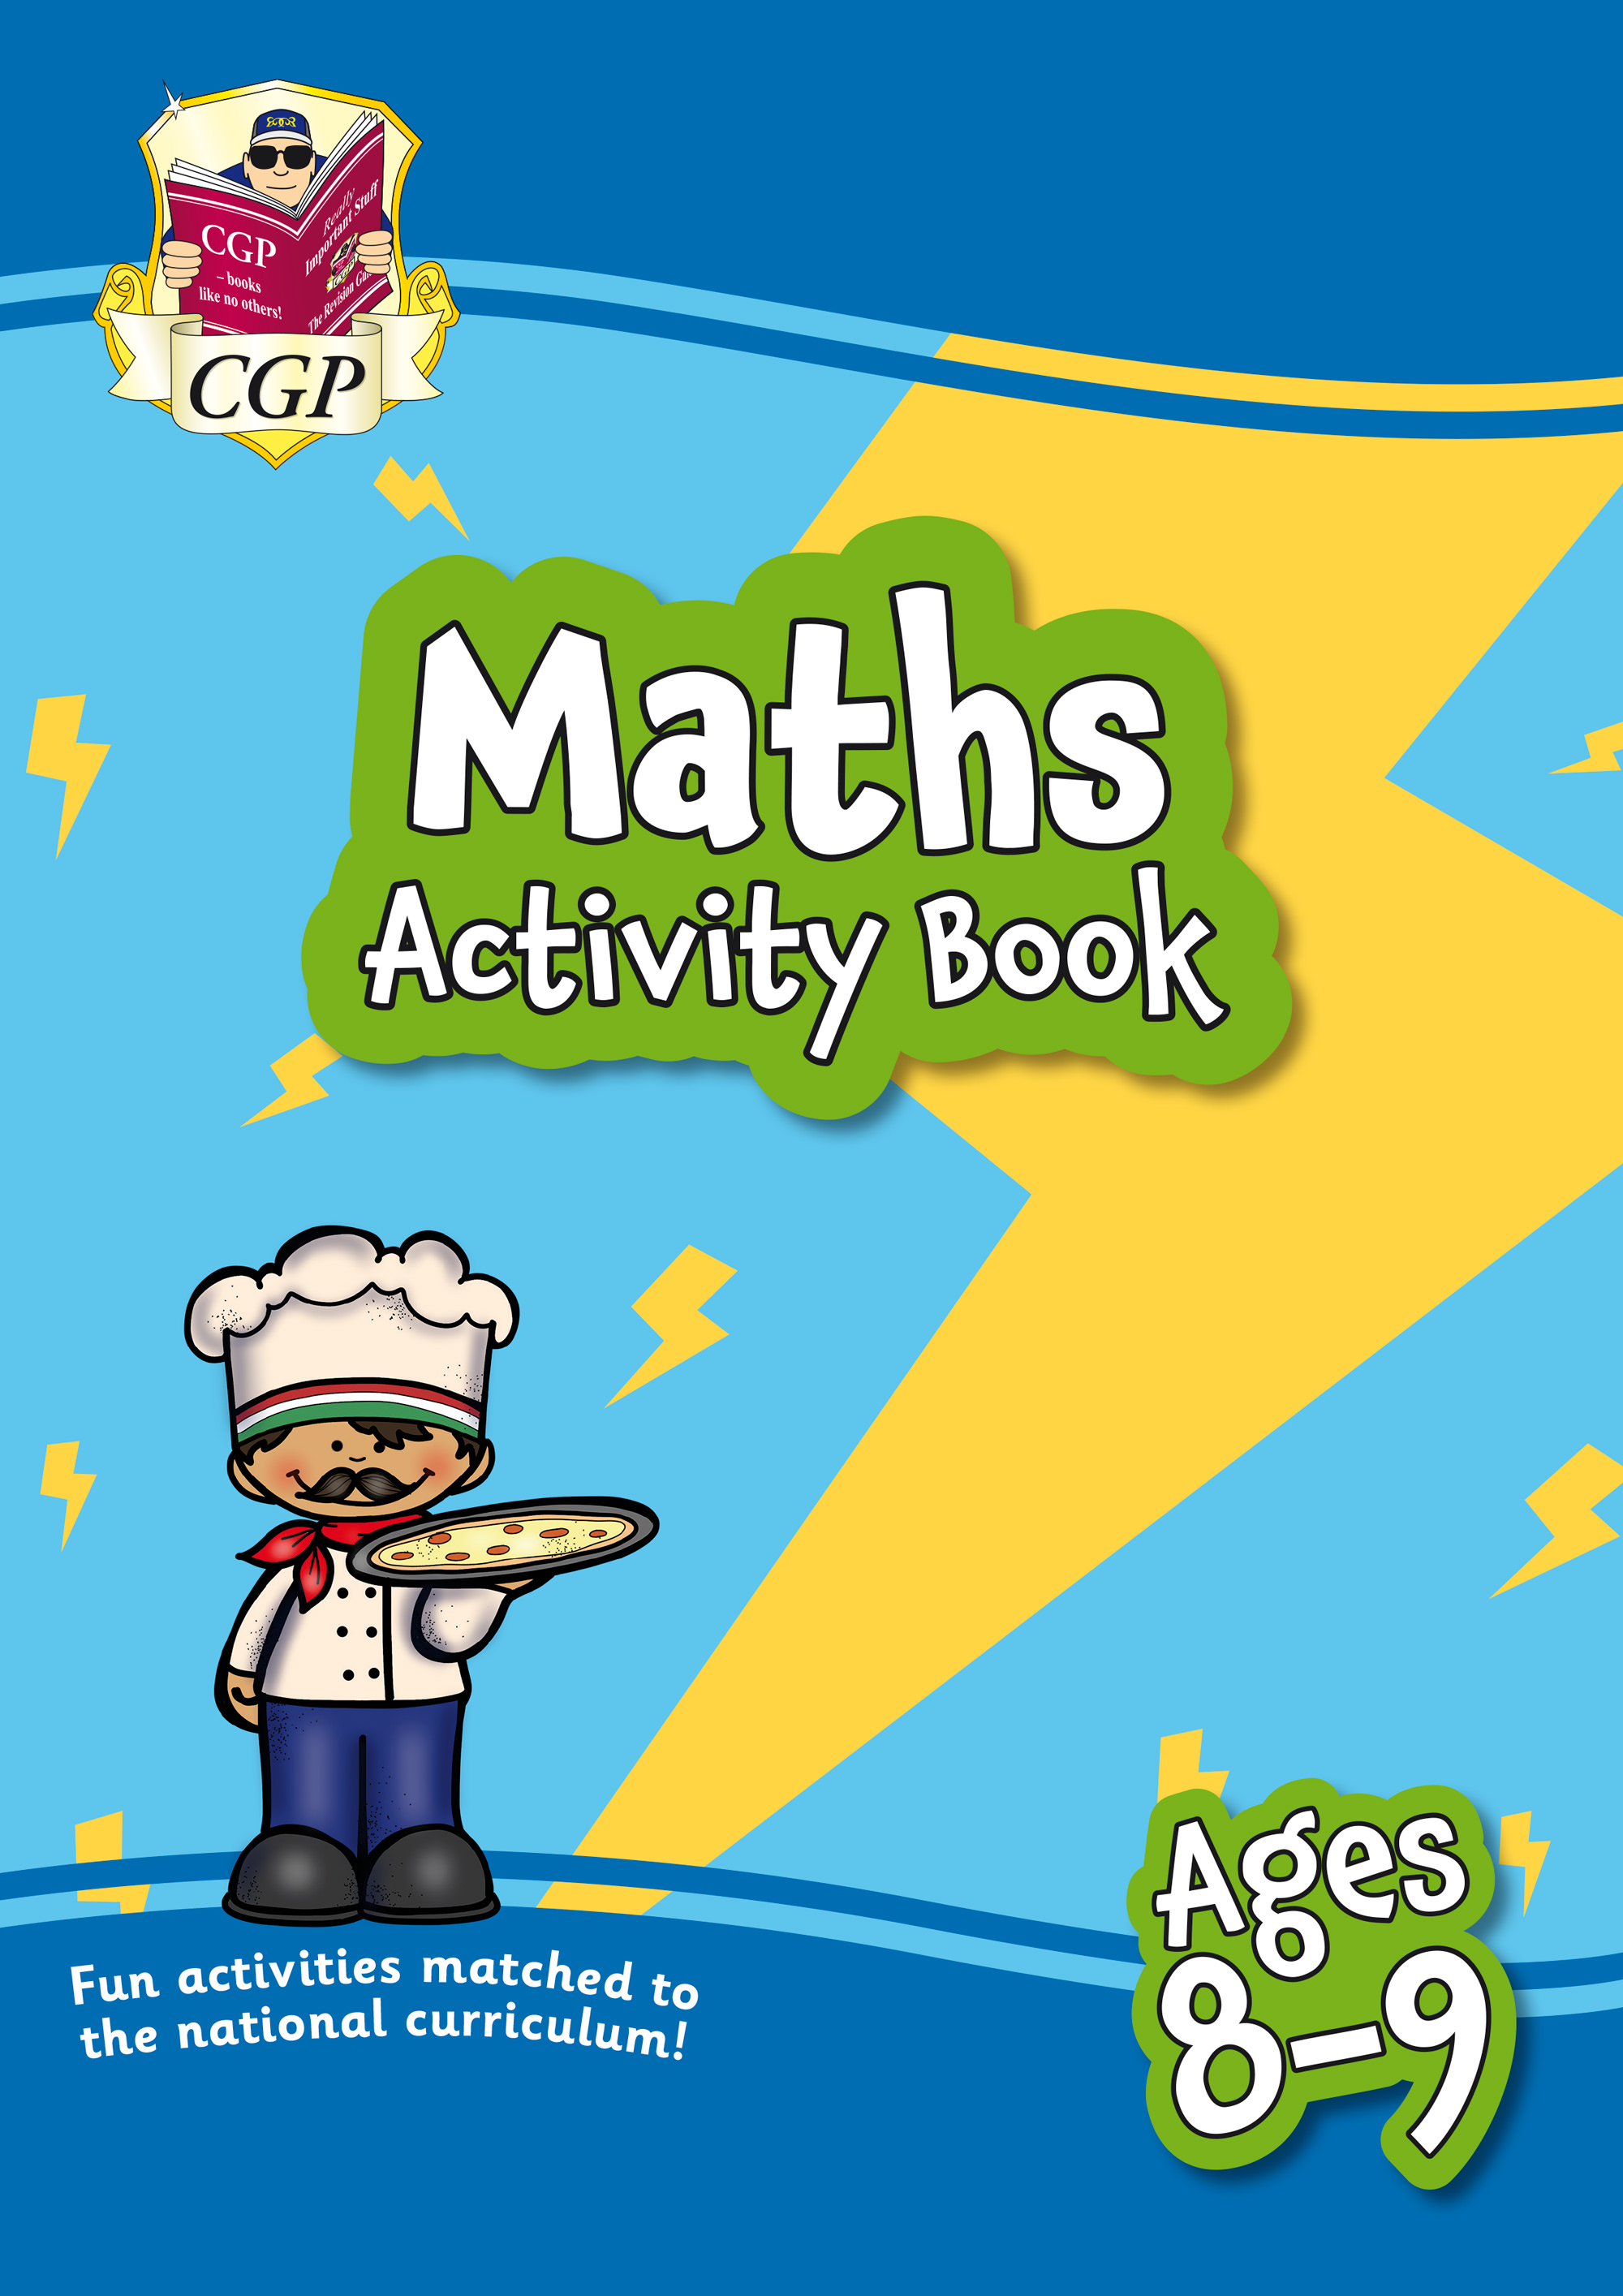 MPF4Q21 - New Maths Home Learning Activity Book for Ages 8-9